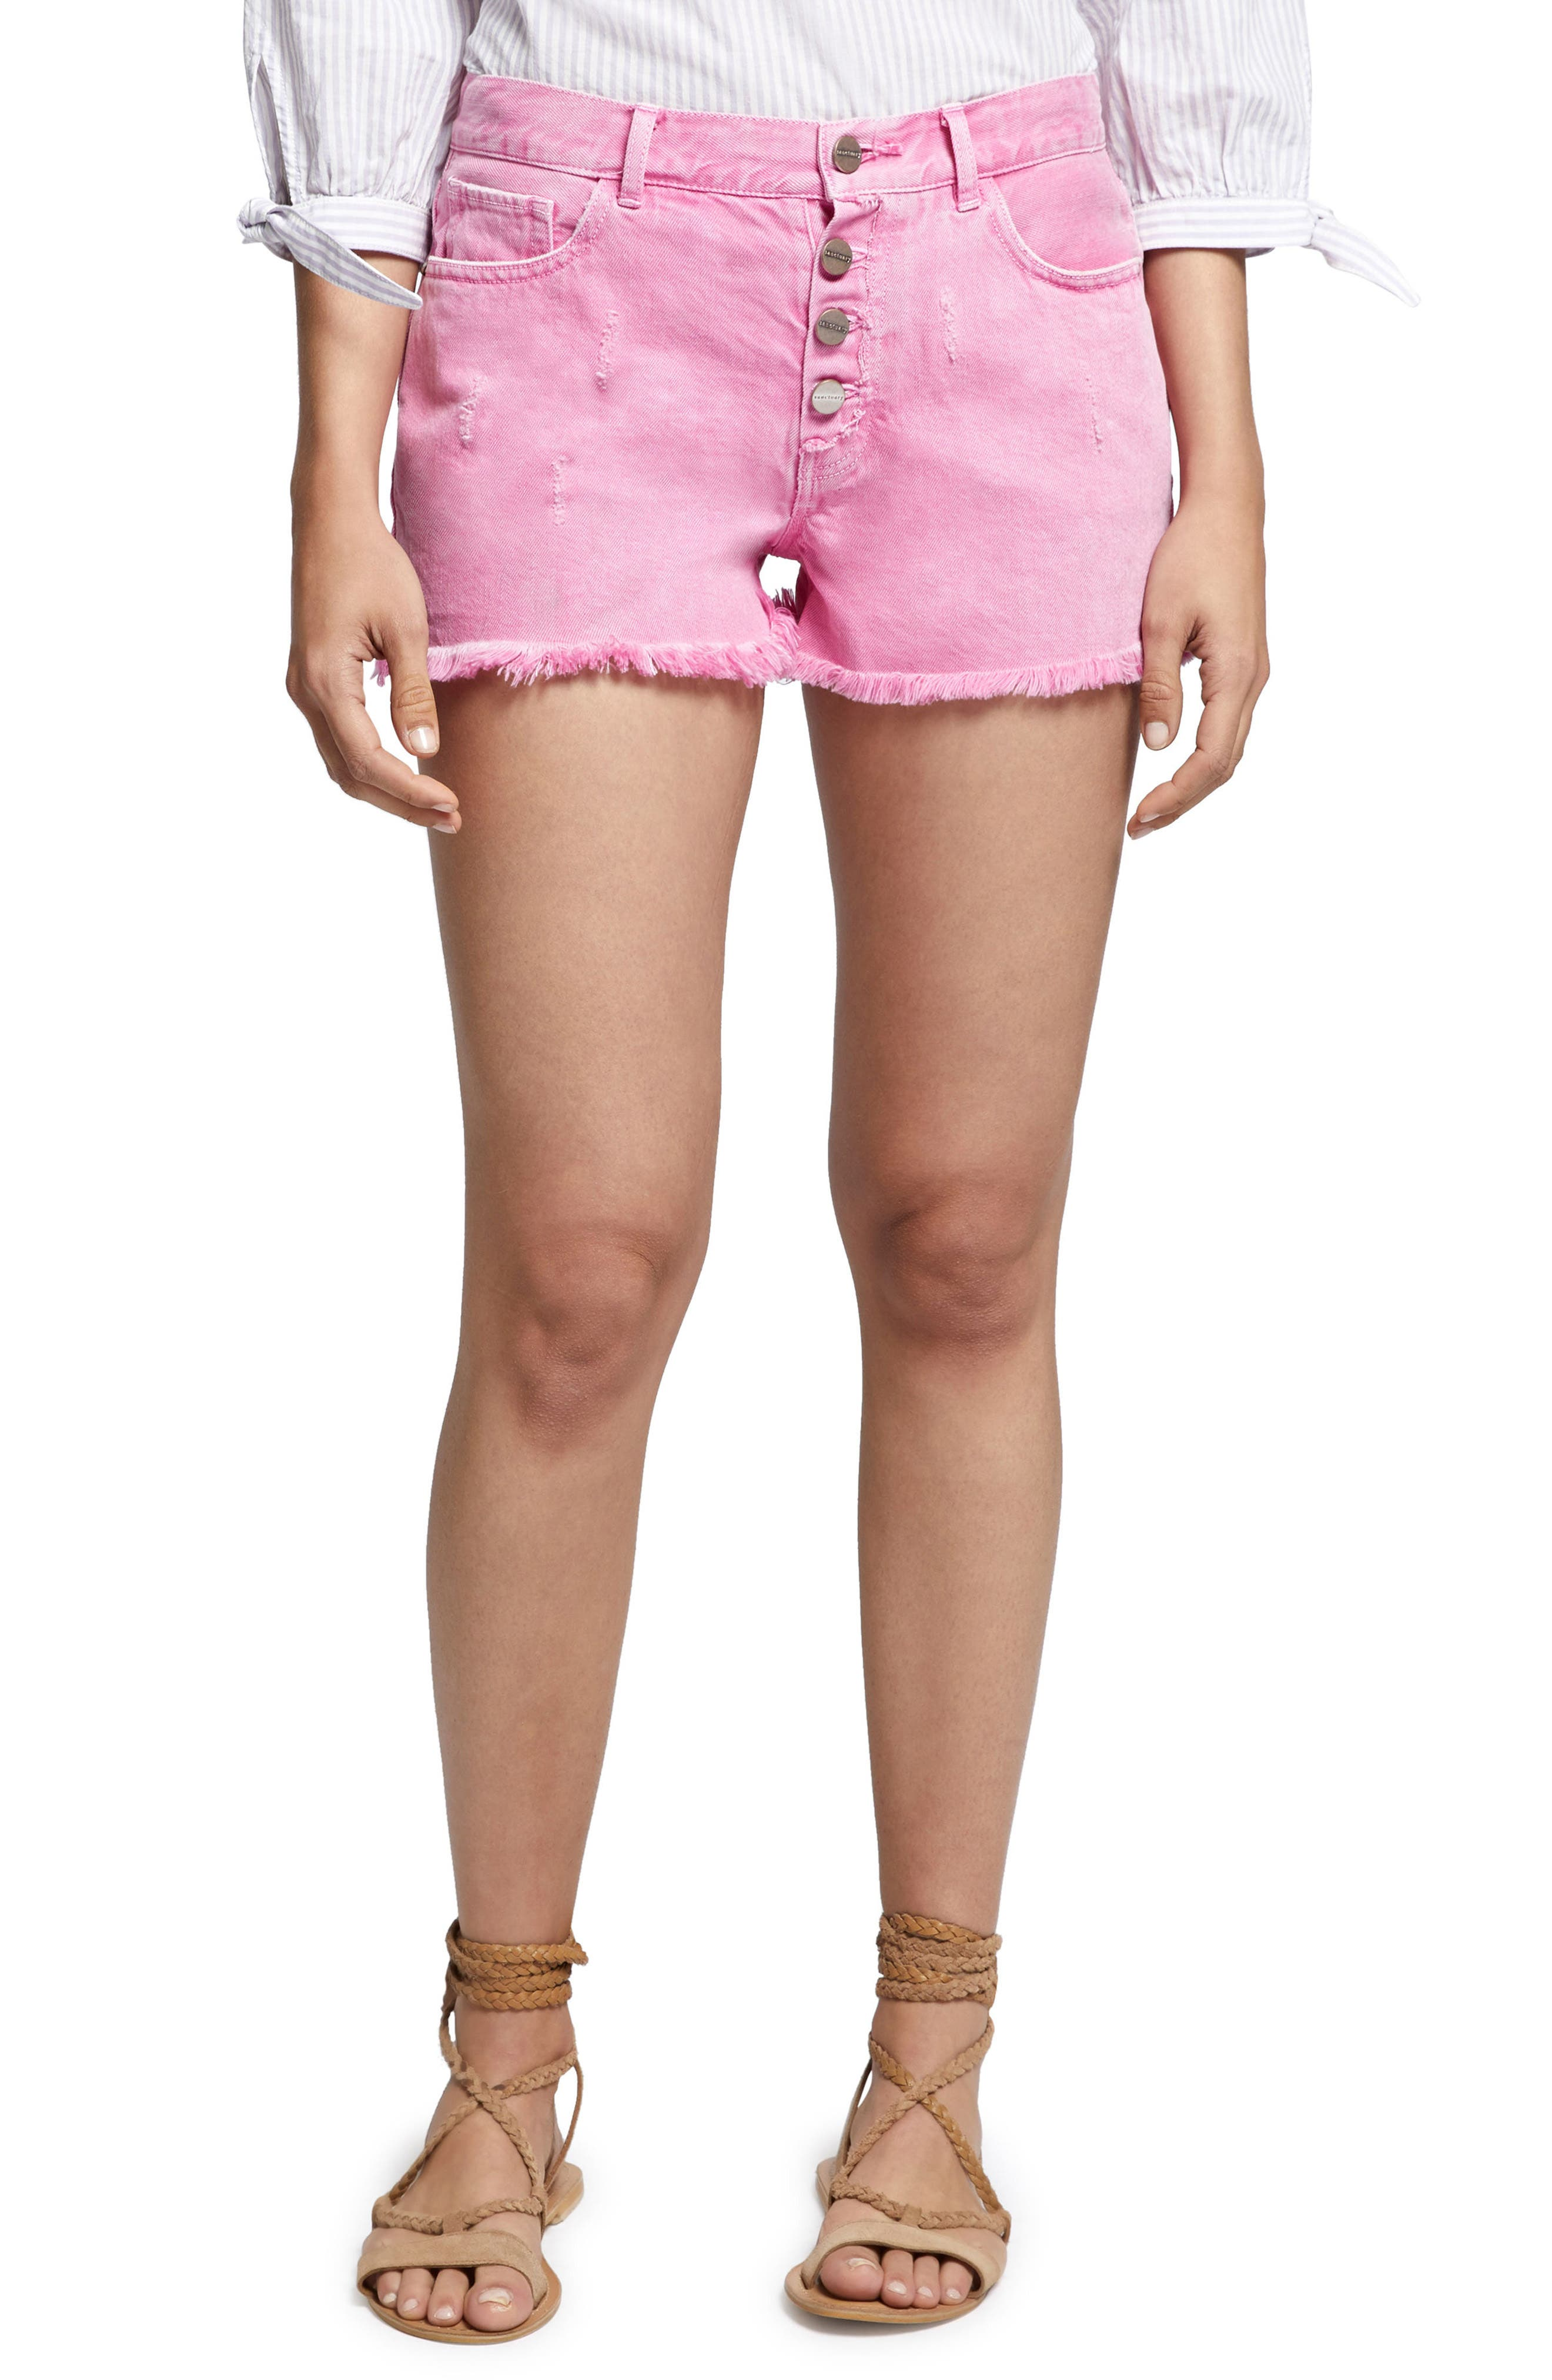 Wild Cherry Fringed Jean Shorts,                         Main,                         color, Washed Wild Cherry